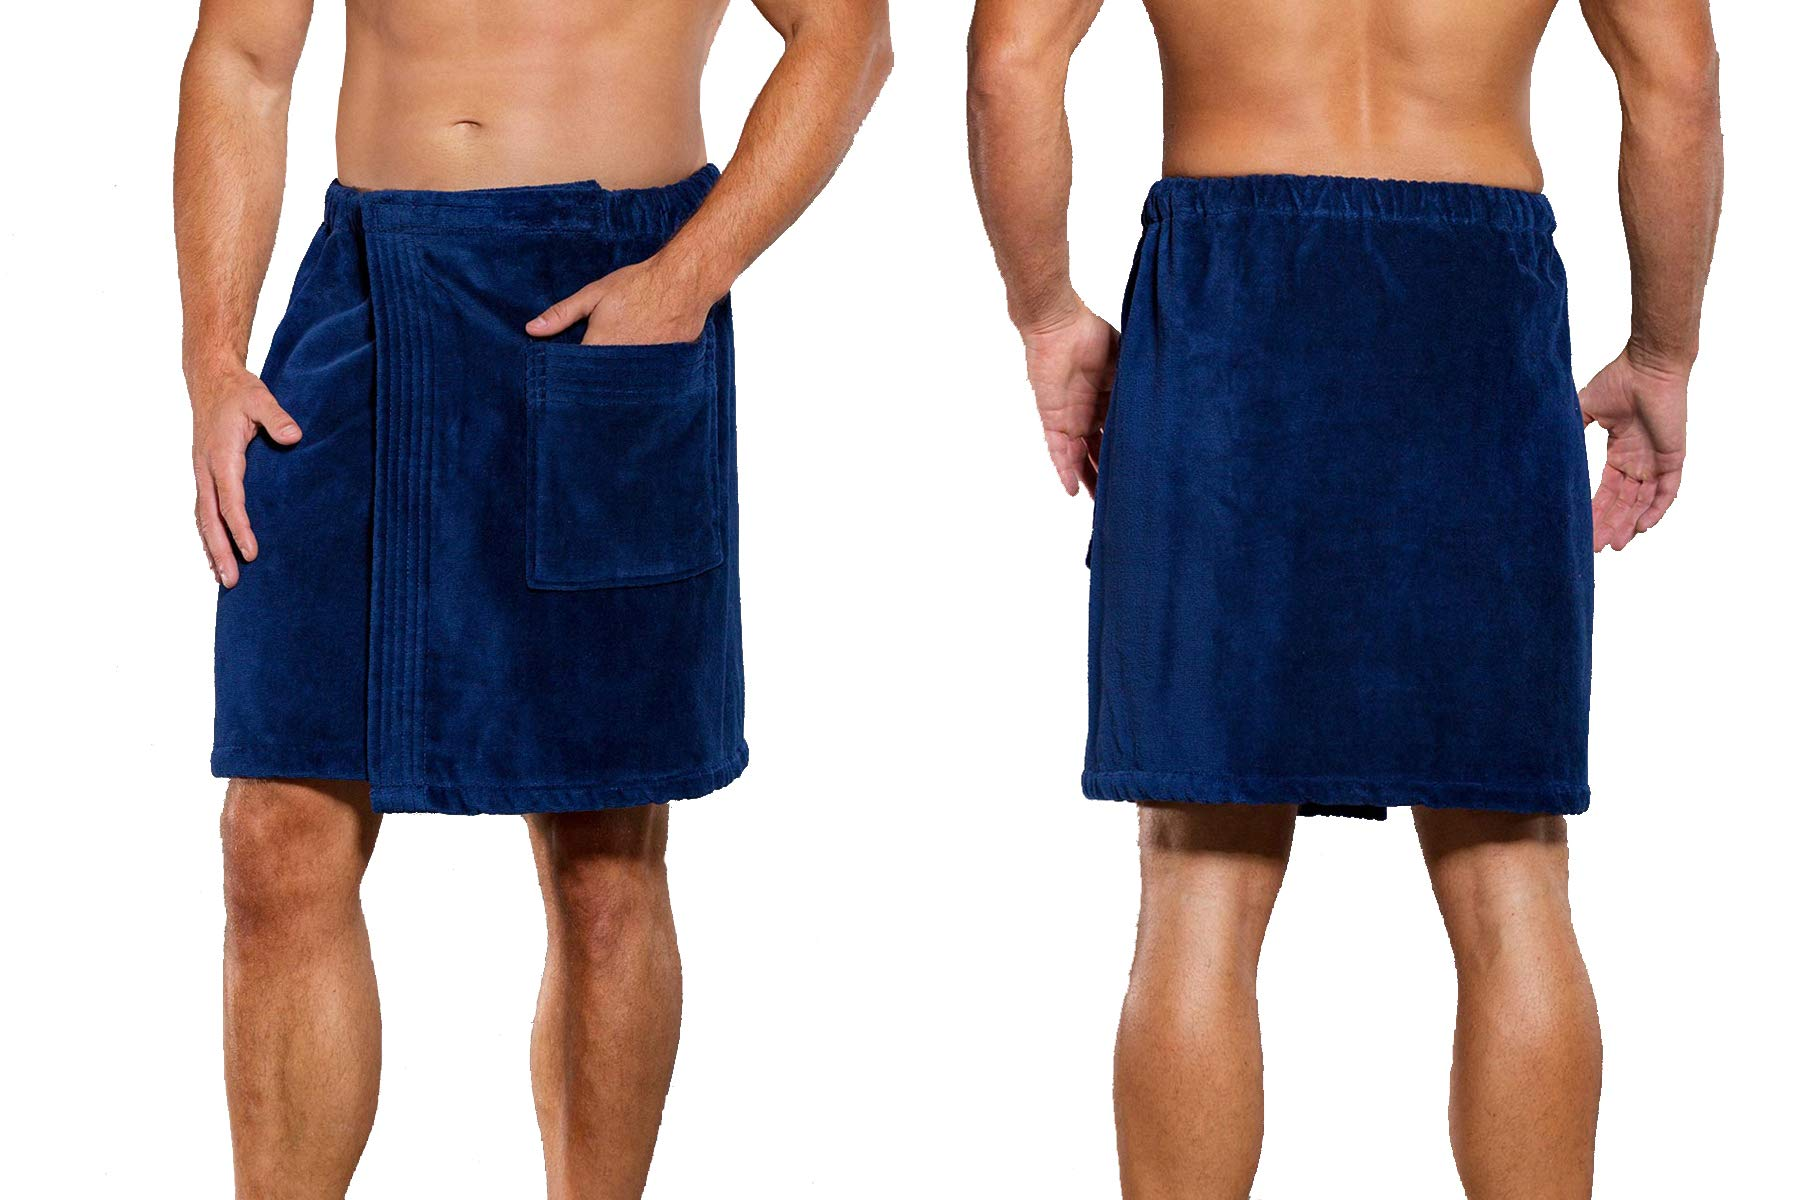 anatolian Men's Adjustable Wrap Around Body Towel for Bath Gym Spa/Cotton - Made in Turkey (2 Pack Navy Blue)